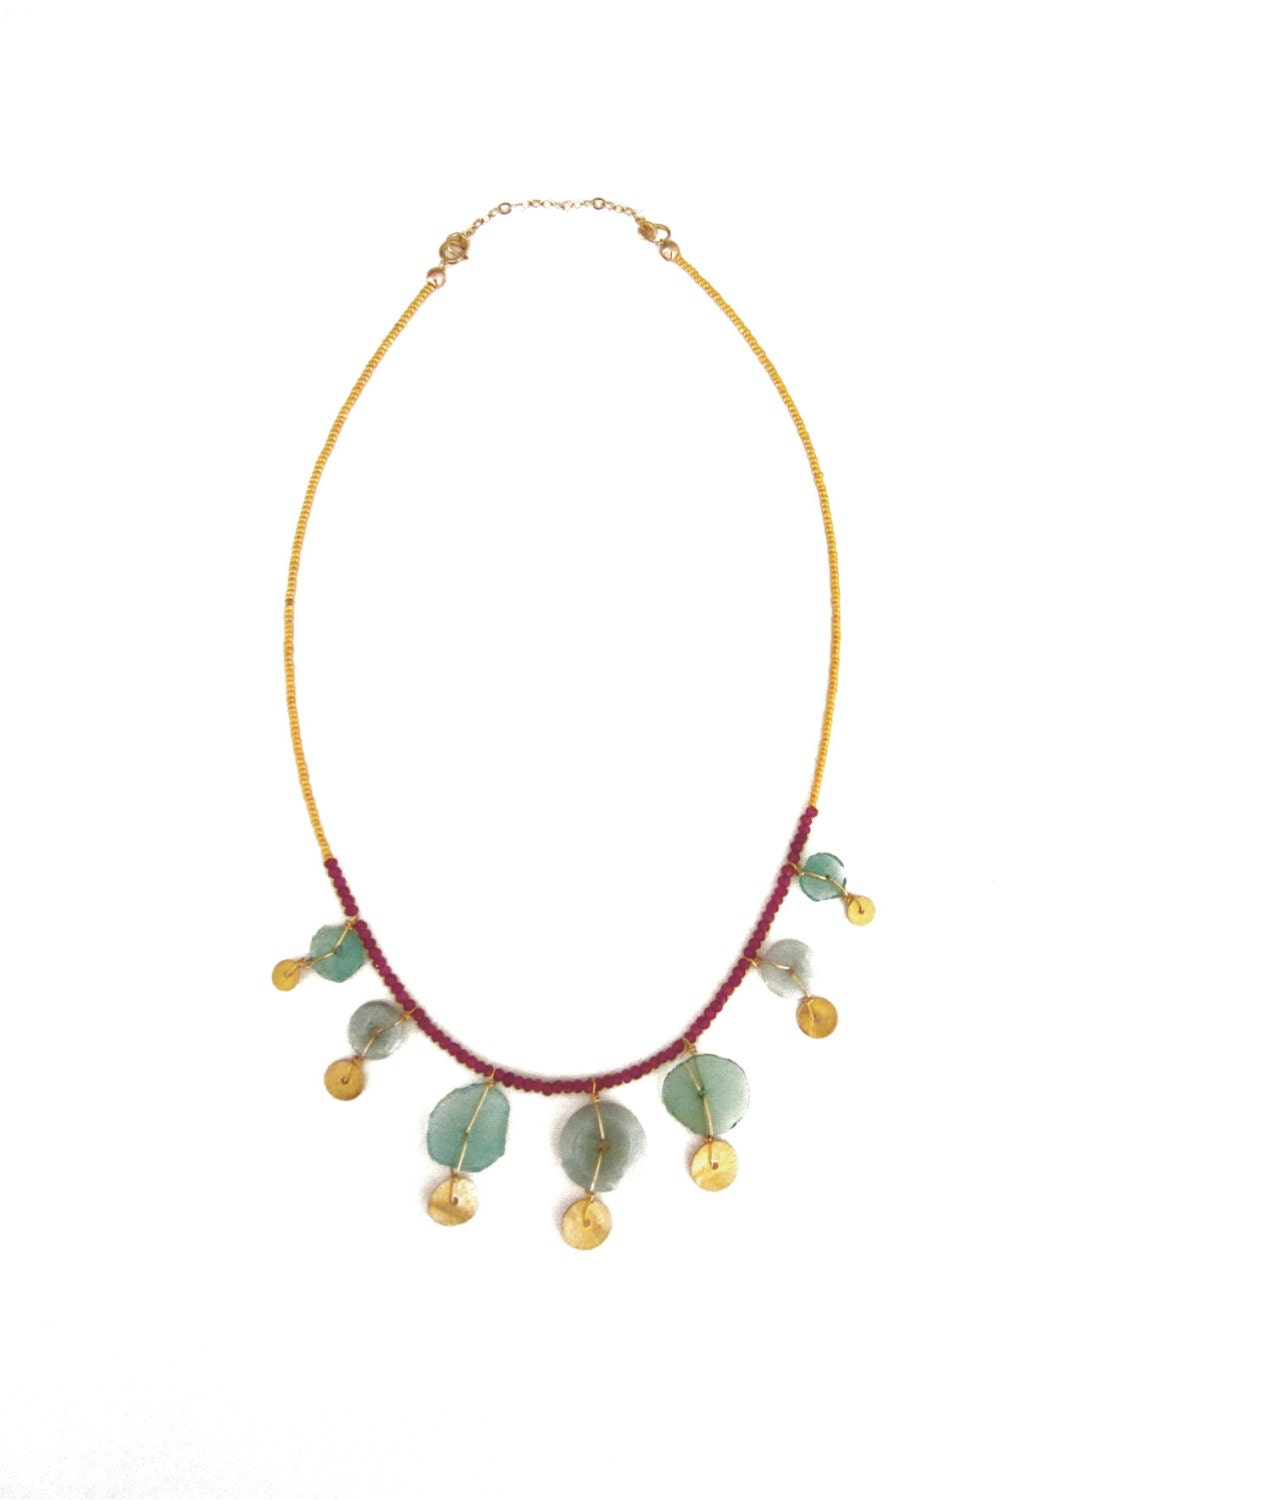 Gold Specks Necklace - GracelandJewelry